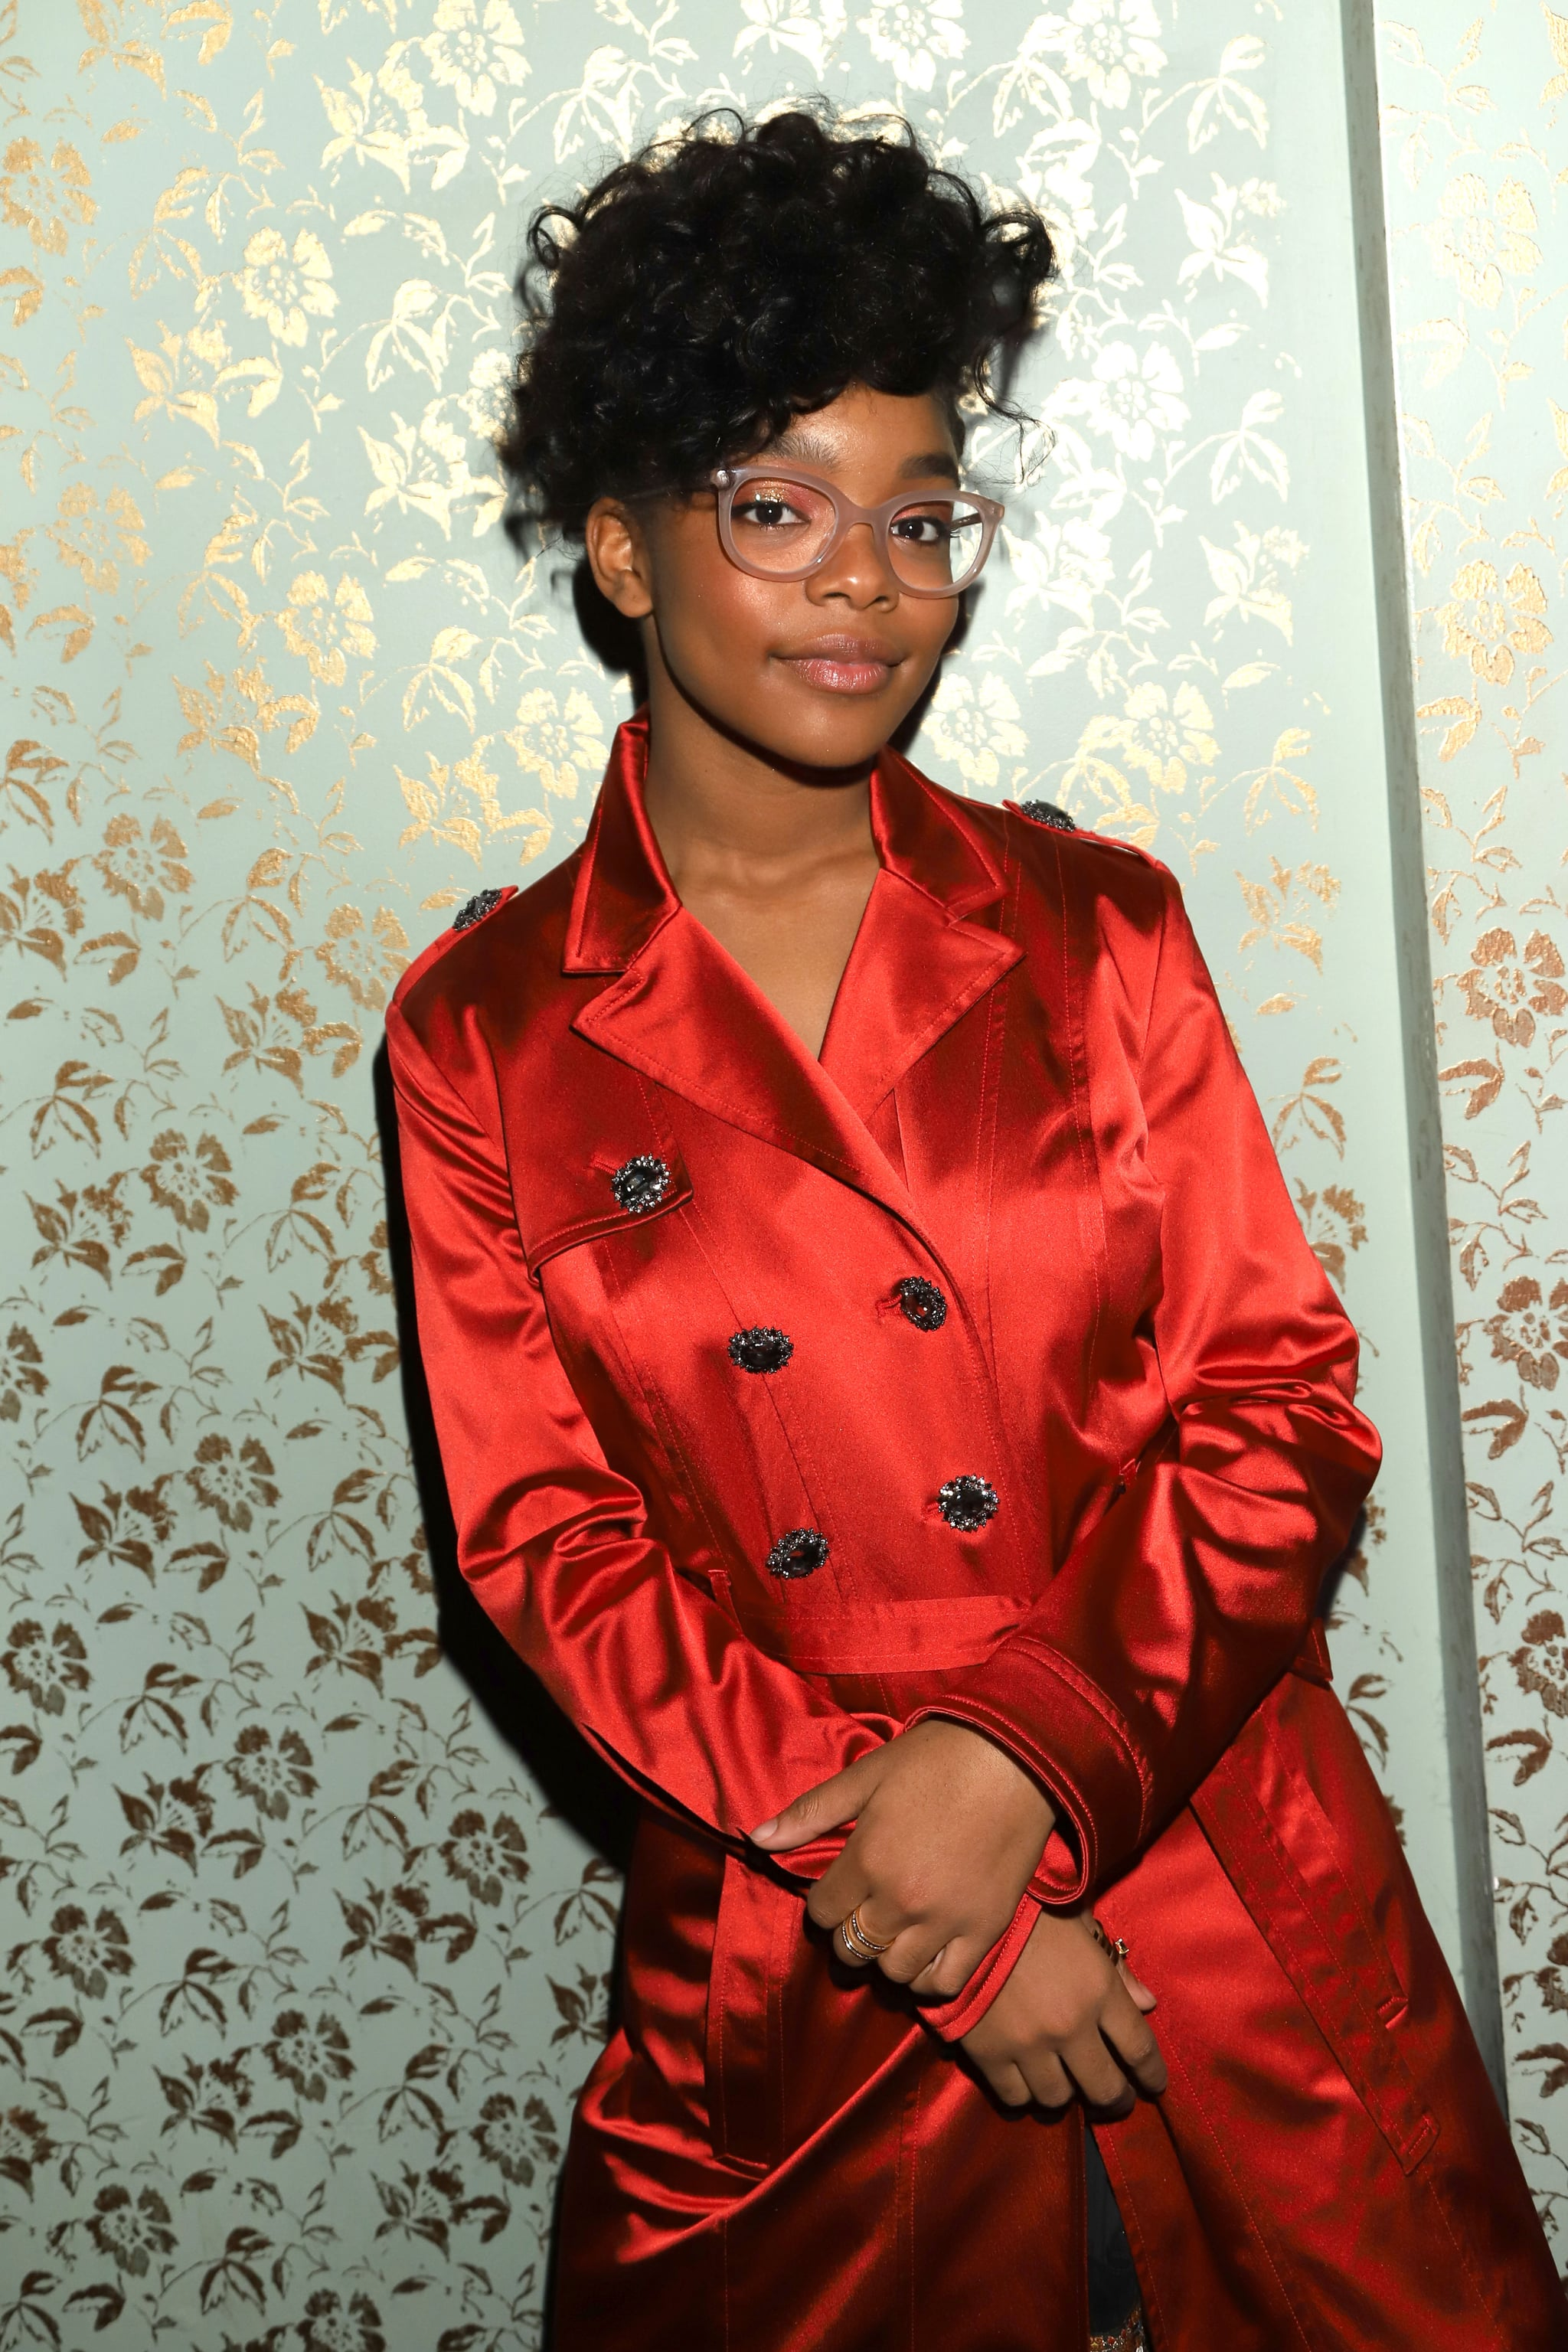 WEST HOLLYWOOD, CALIFORNIA - FEBRUARY 22:  Marsai Martin attends Common's 5th Annual Toast to the Arts  at Ysabel on February 22, 2019 in West Hollywood, California. (Photo by Arnold Turner/Getty Images for  Freedom Road Productions)